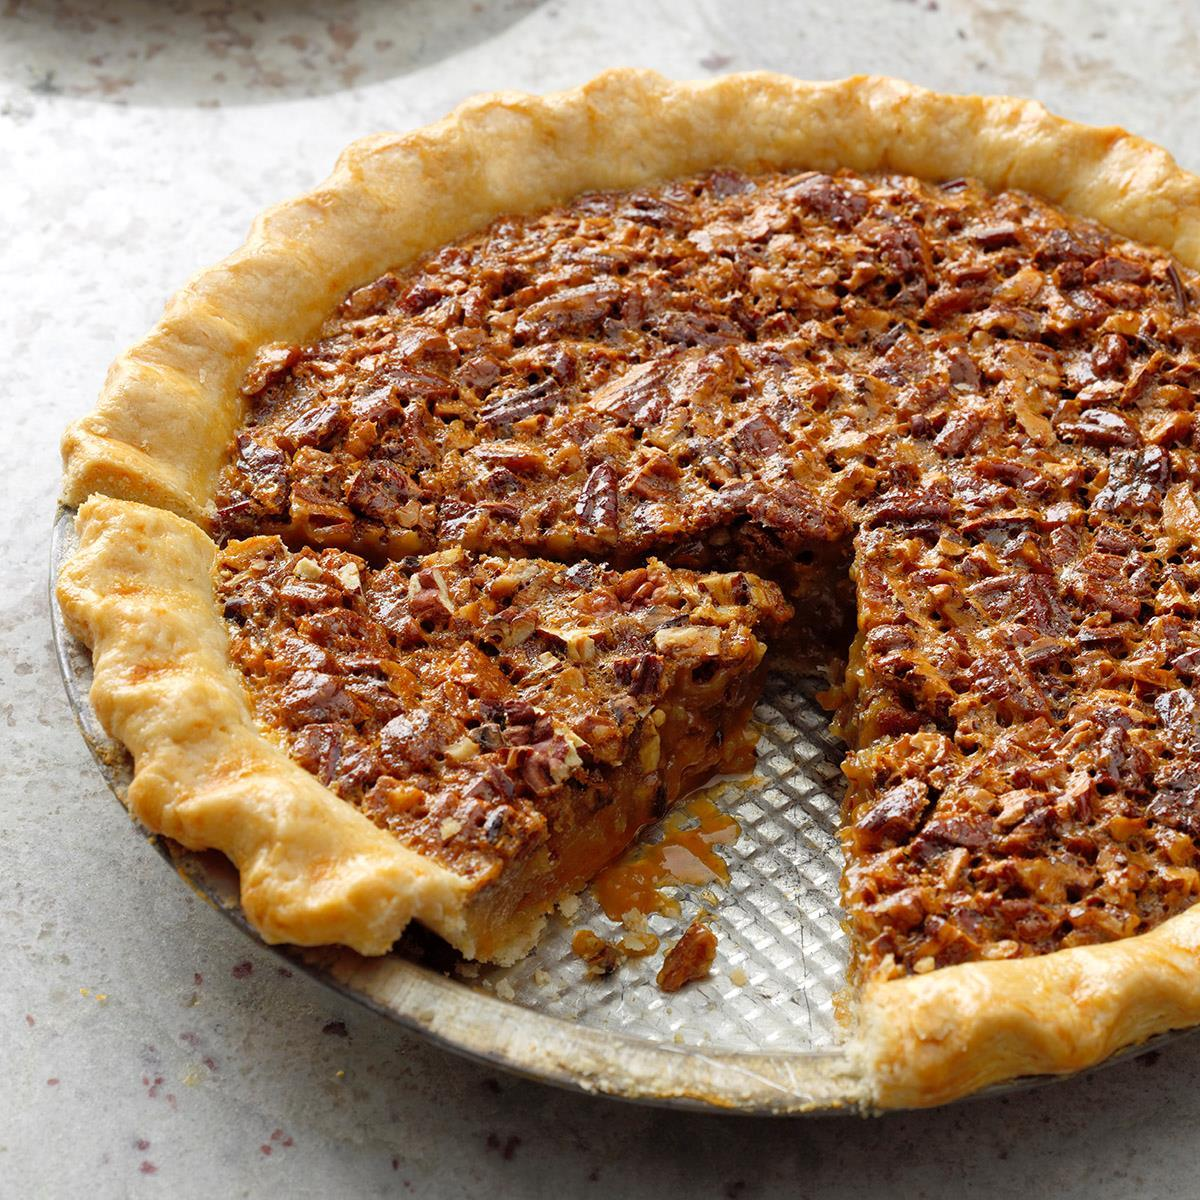 Caramel Pecan Pie Recipe How To Make It Taste Of Home